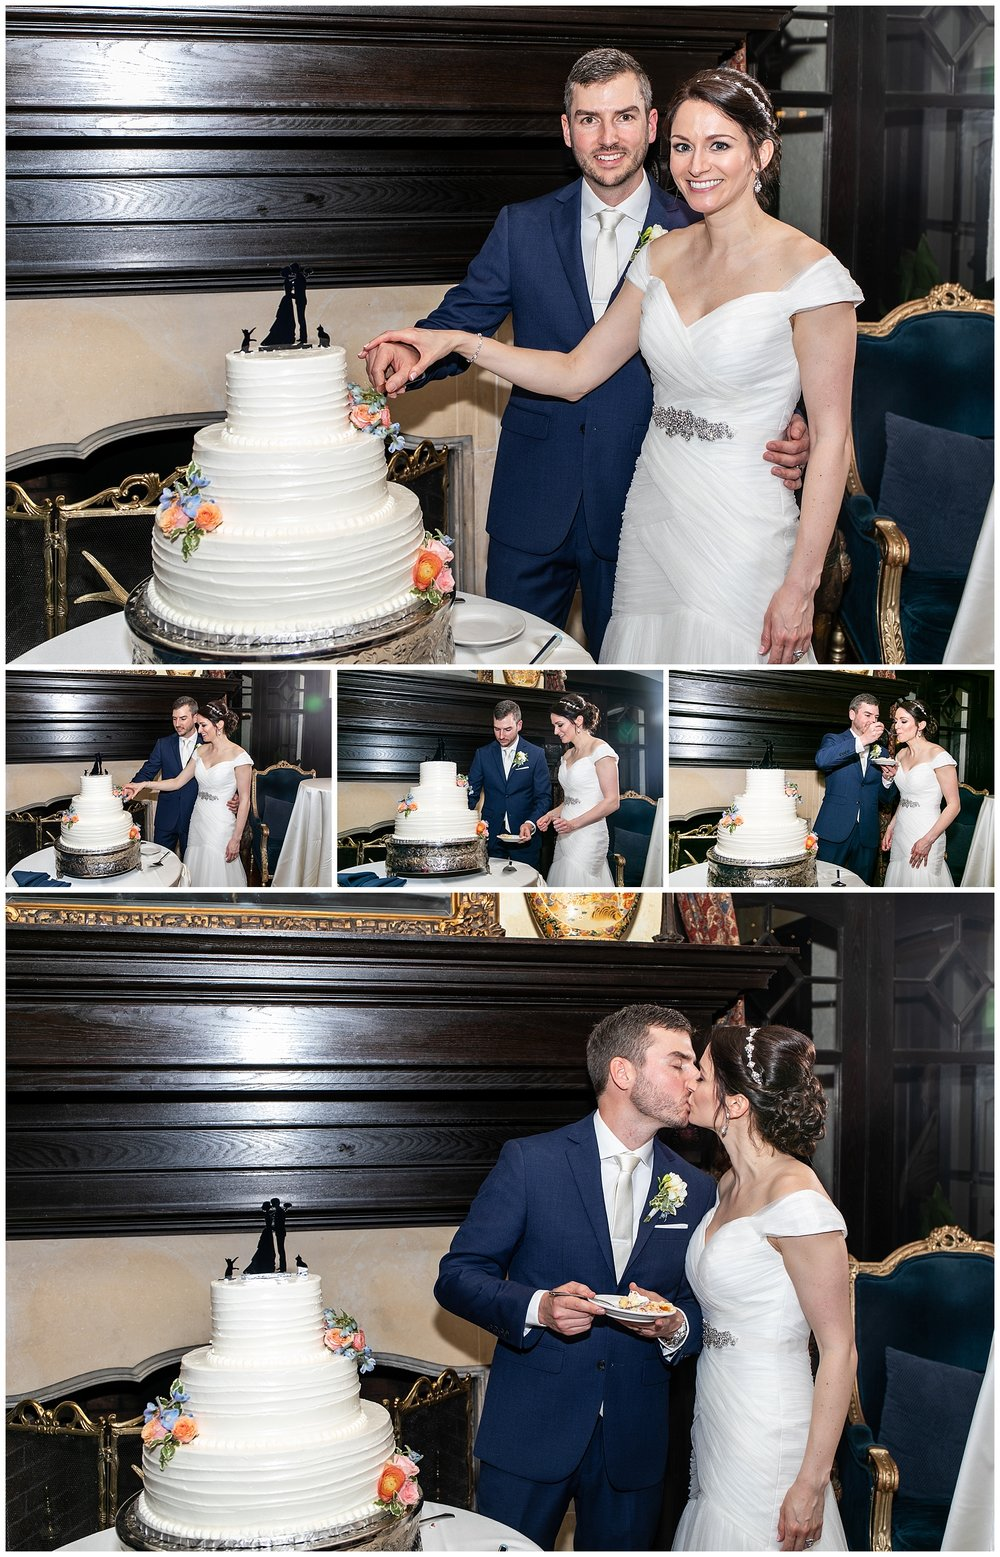 Ashley + Kevin Gramercy Mansion Rainy Day Baltimore Wedding Living Radiant Photography photos_0108.jpg